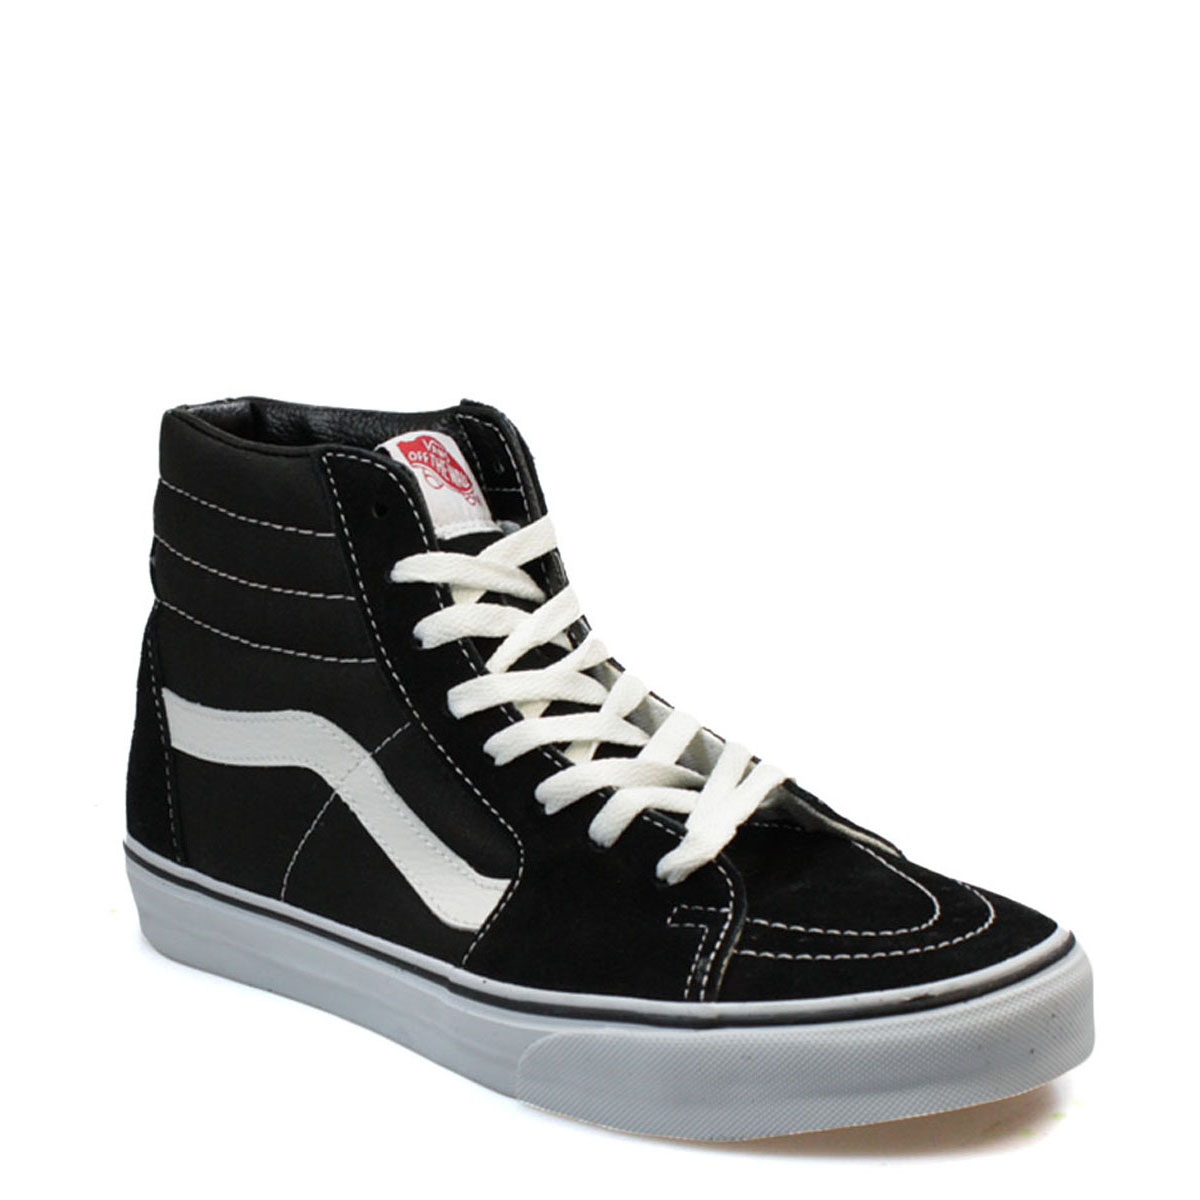 Details about Vans Unisex SK8 Black Hi Top Trainers a6450a13b